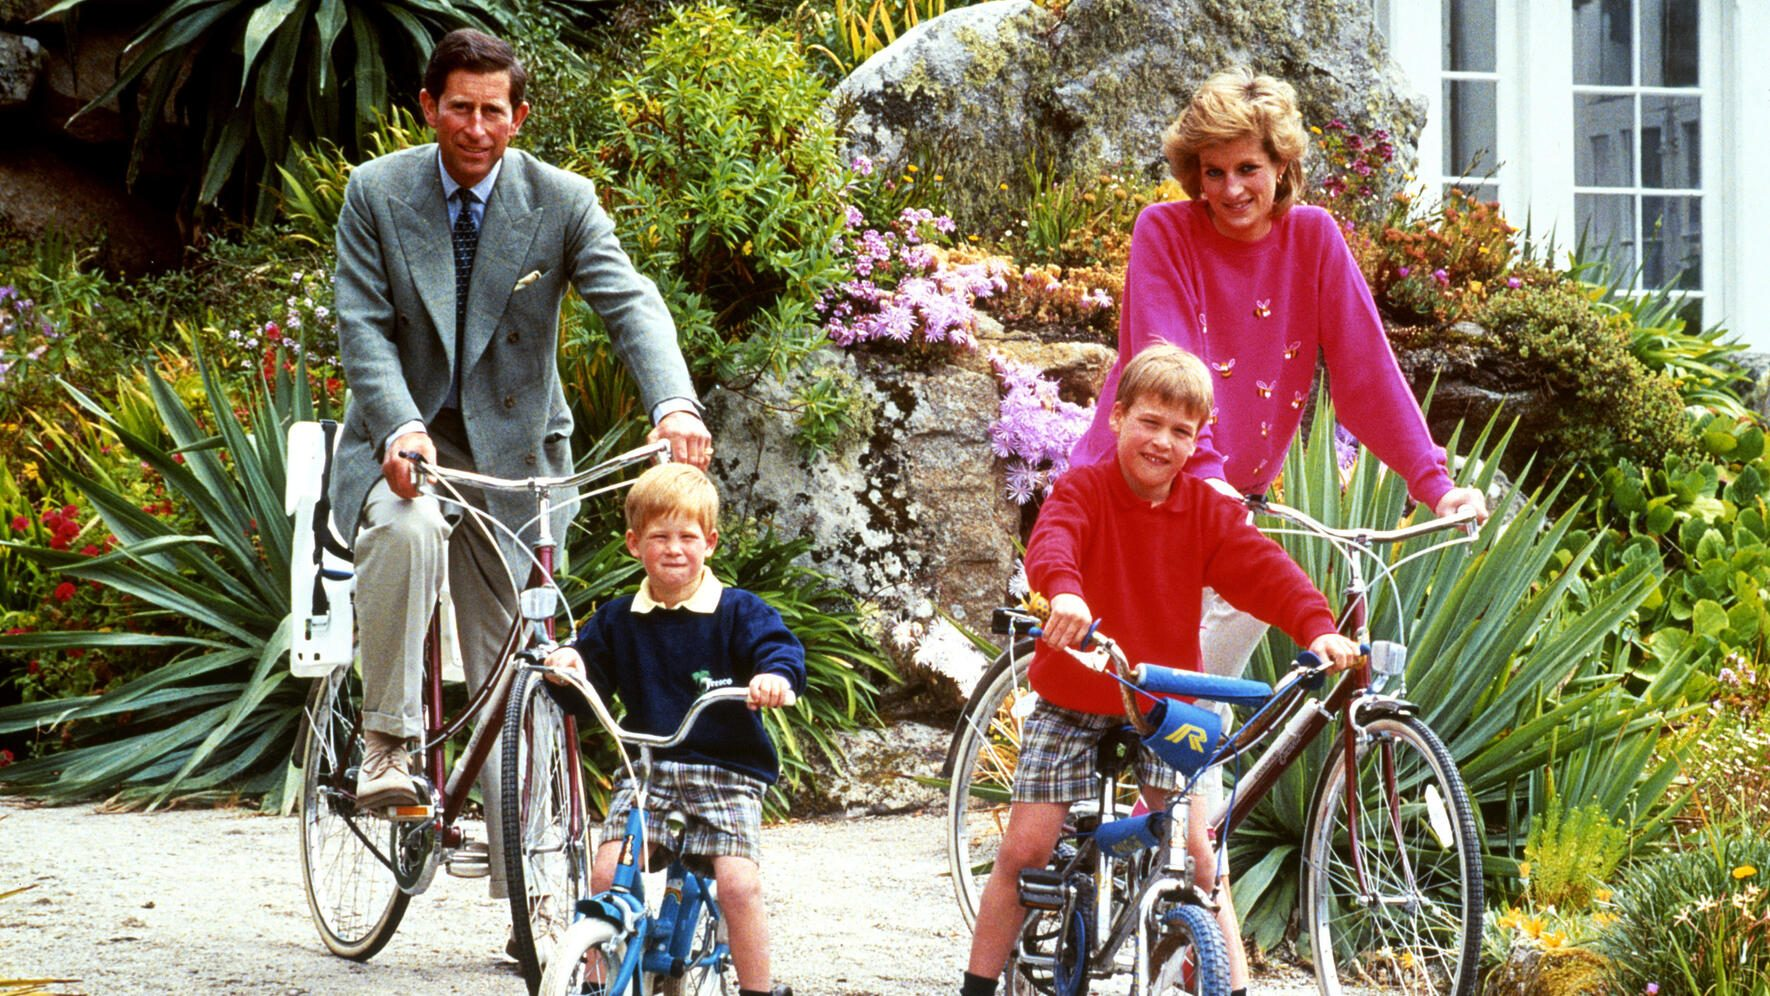 File photo dated 01/06/89 of the Prince and Princess of Wales with sons Prince William, right, and Prince Harry preparing for a cycling trip in Tresco during their holiday on the Scilly Isles. (FOTO: DUKAS/PA PHOTOS)